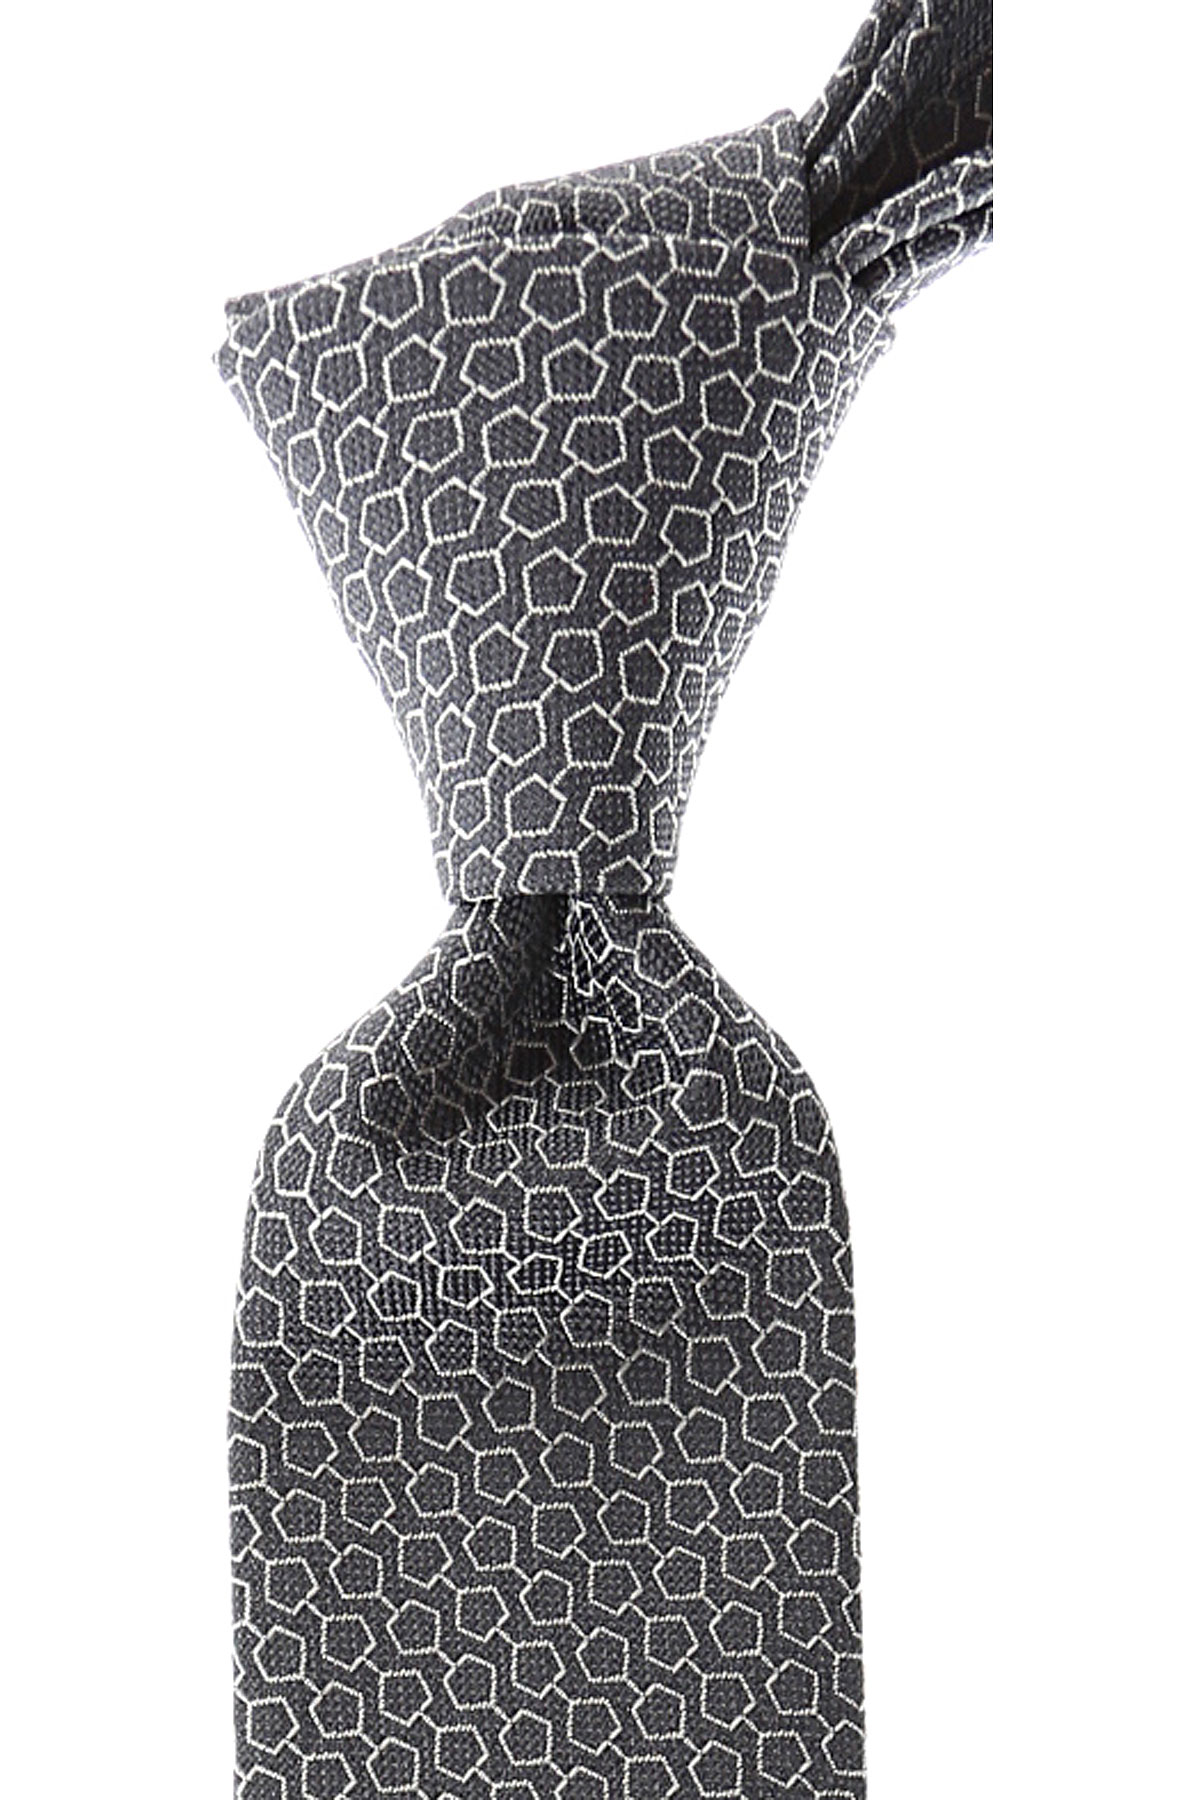 Ermenegildo_Zegna_Ties_On_Sale_Dimgray_Silk_2019